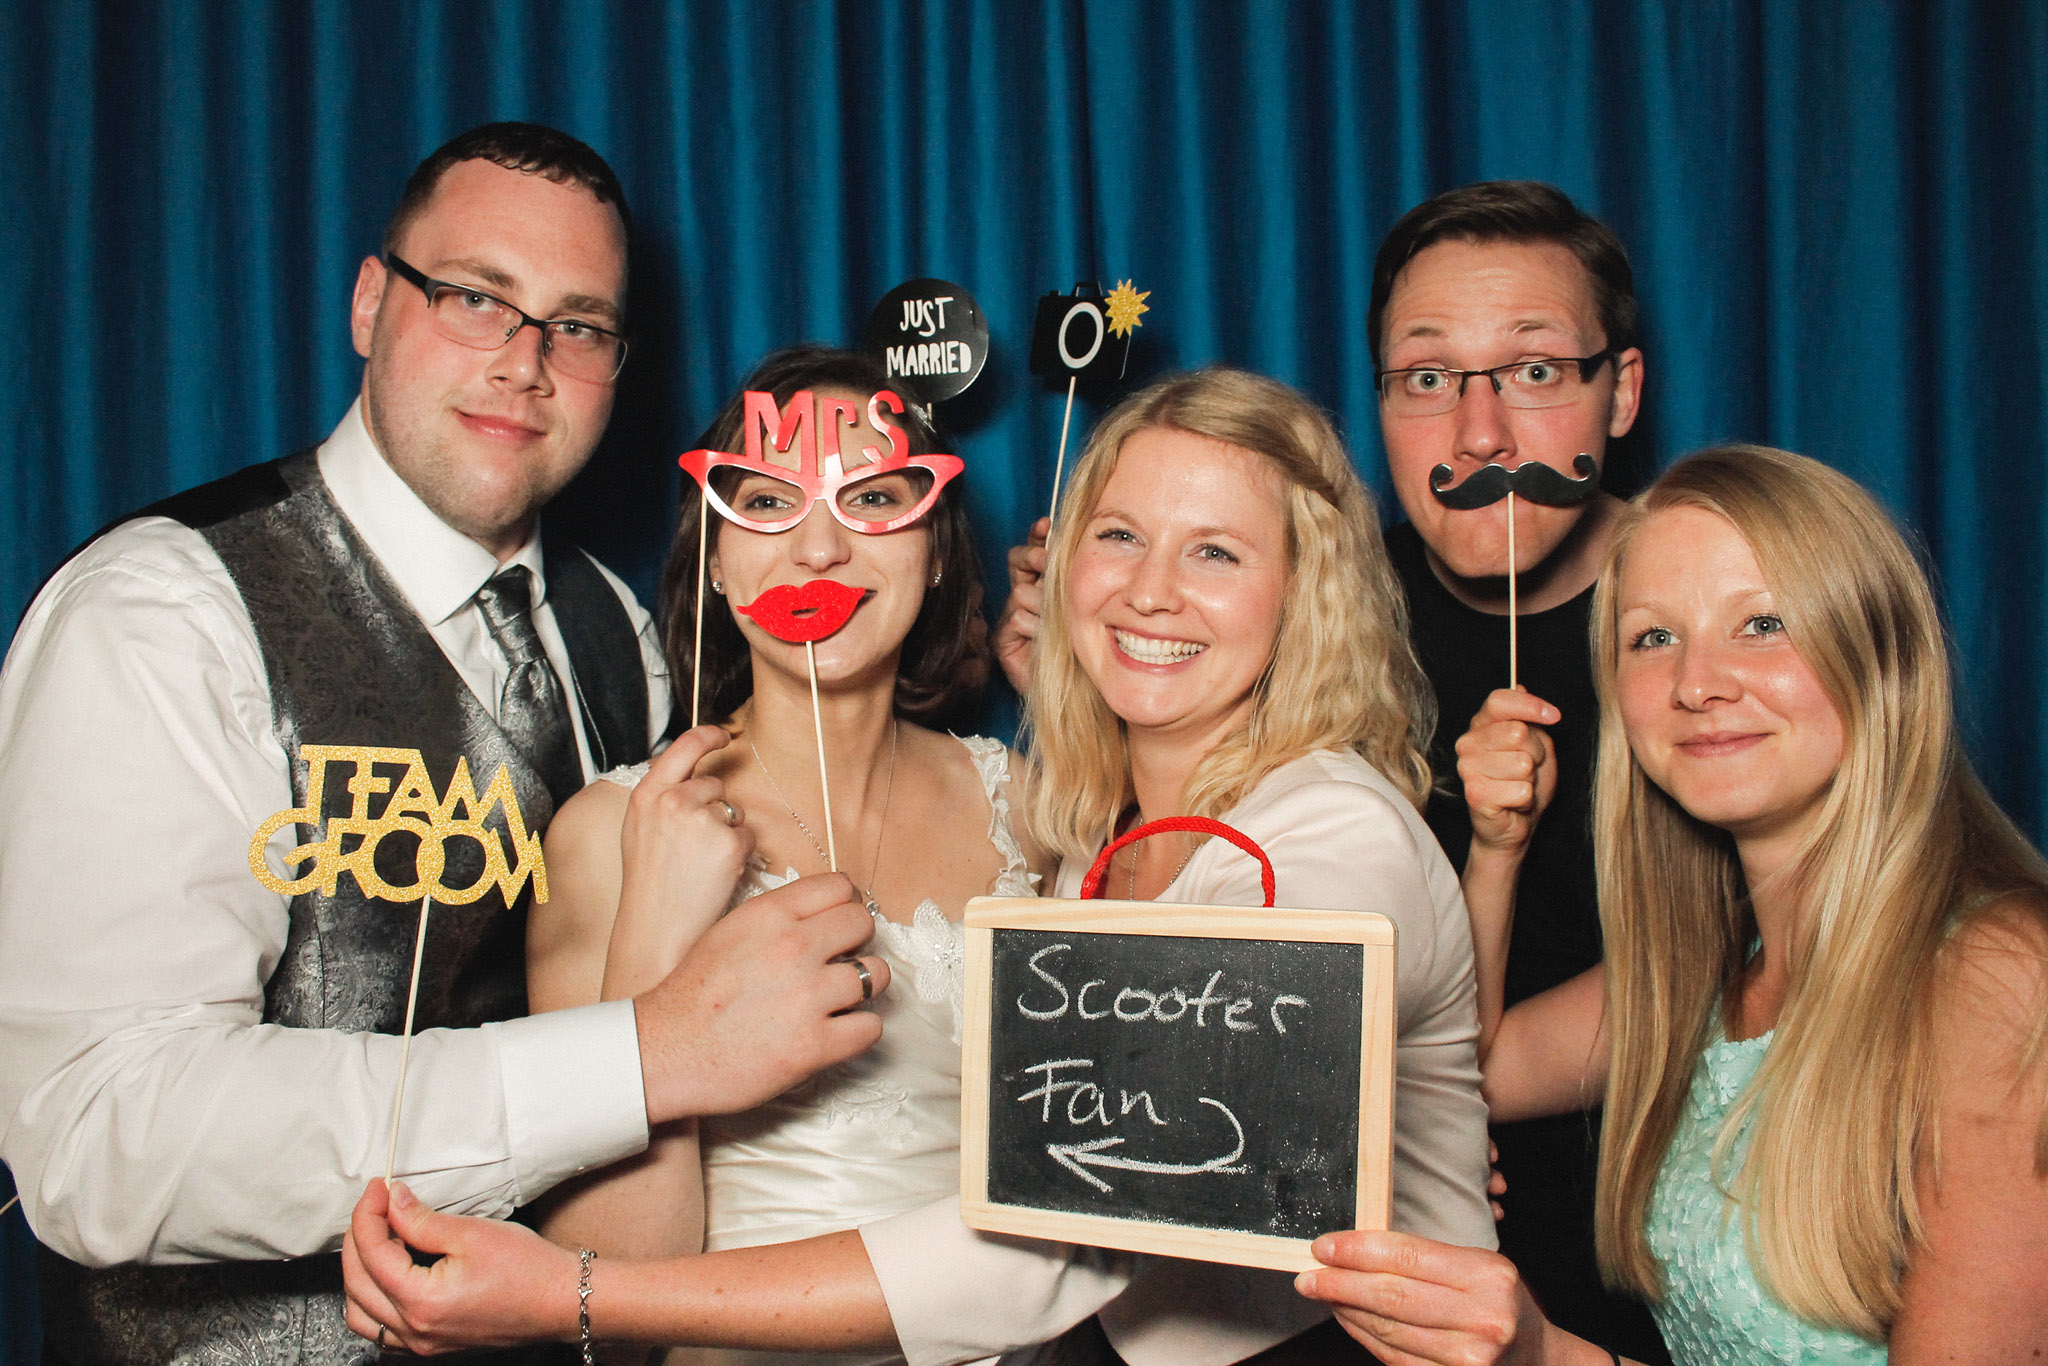 photobooth_hochzeit_wedding_sarah_christoph_003.jpg